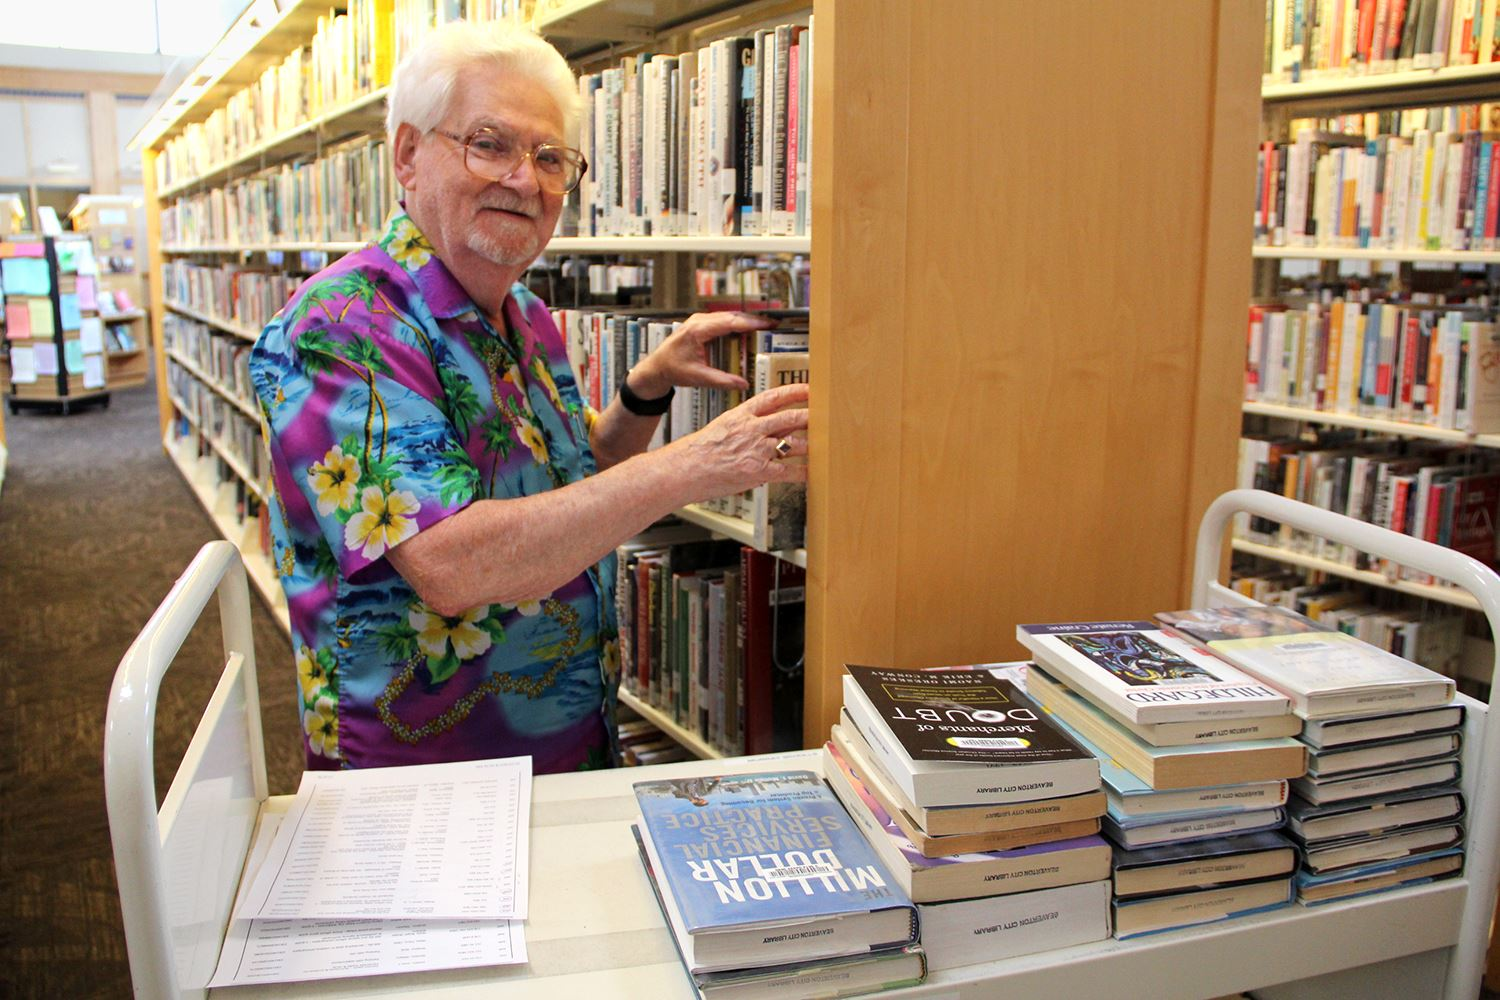 Photo of an older man shelving books inside a library.